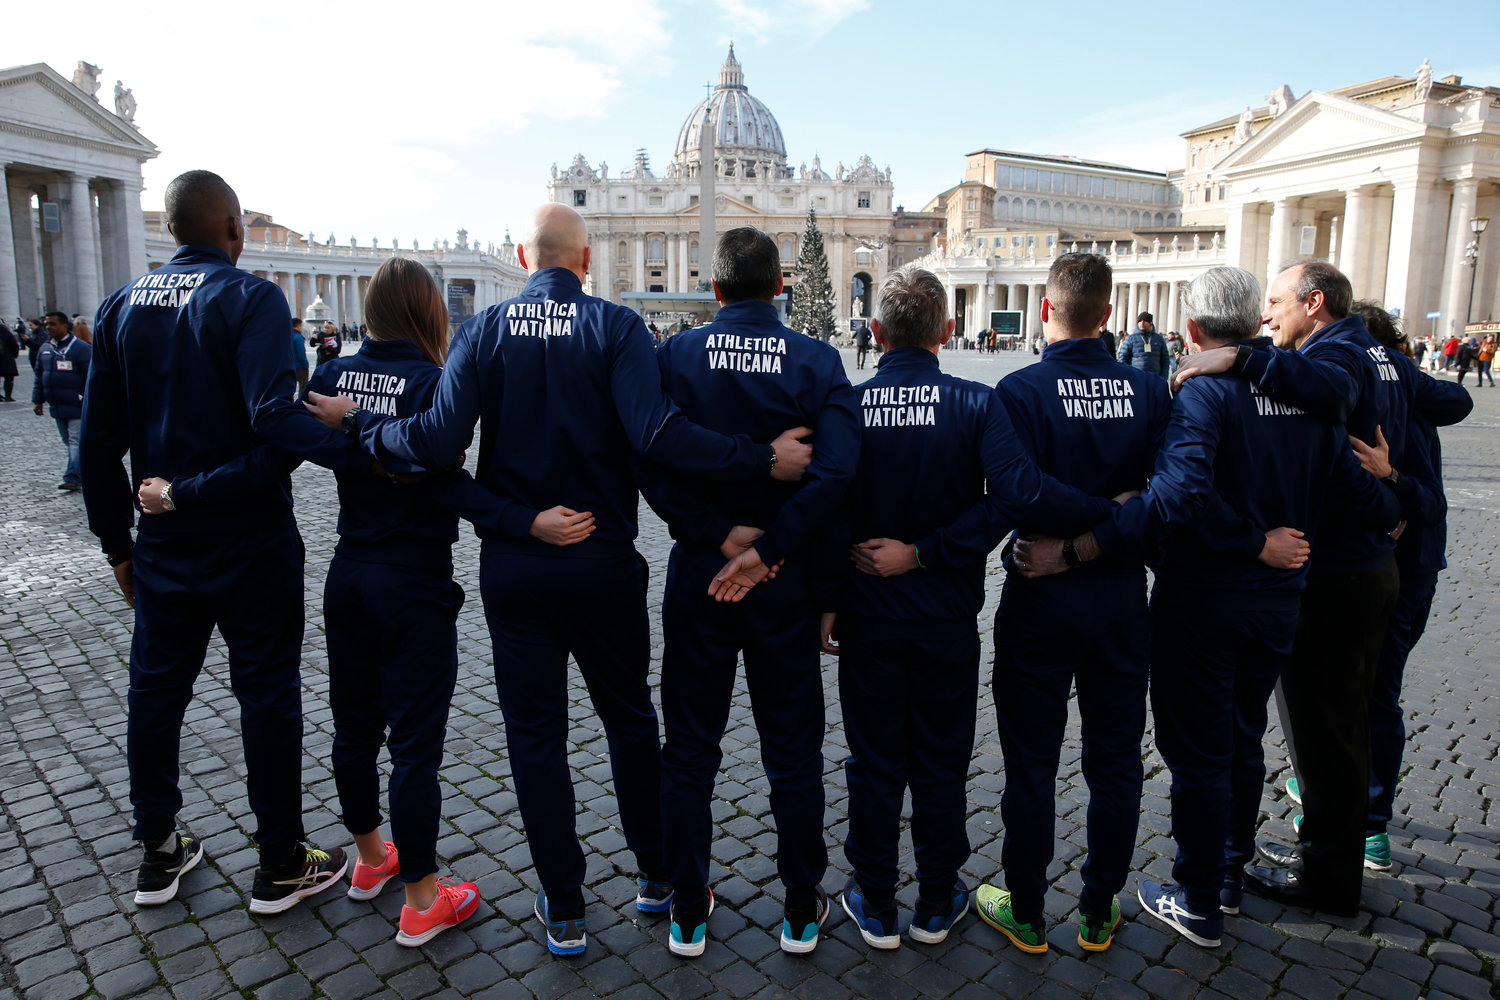 Members of the new Vatican sports team pose during a photo opportunity outside St. Peter's Square at the Vatican Jan. 10.